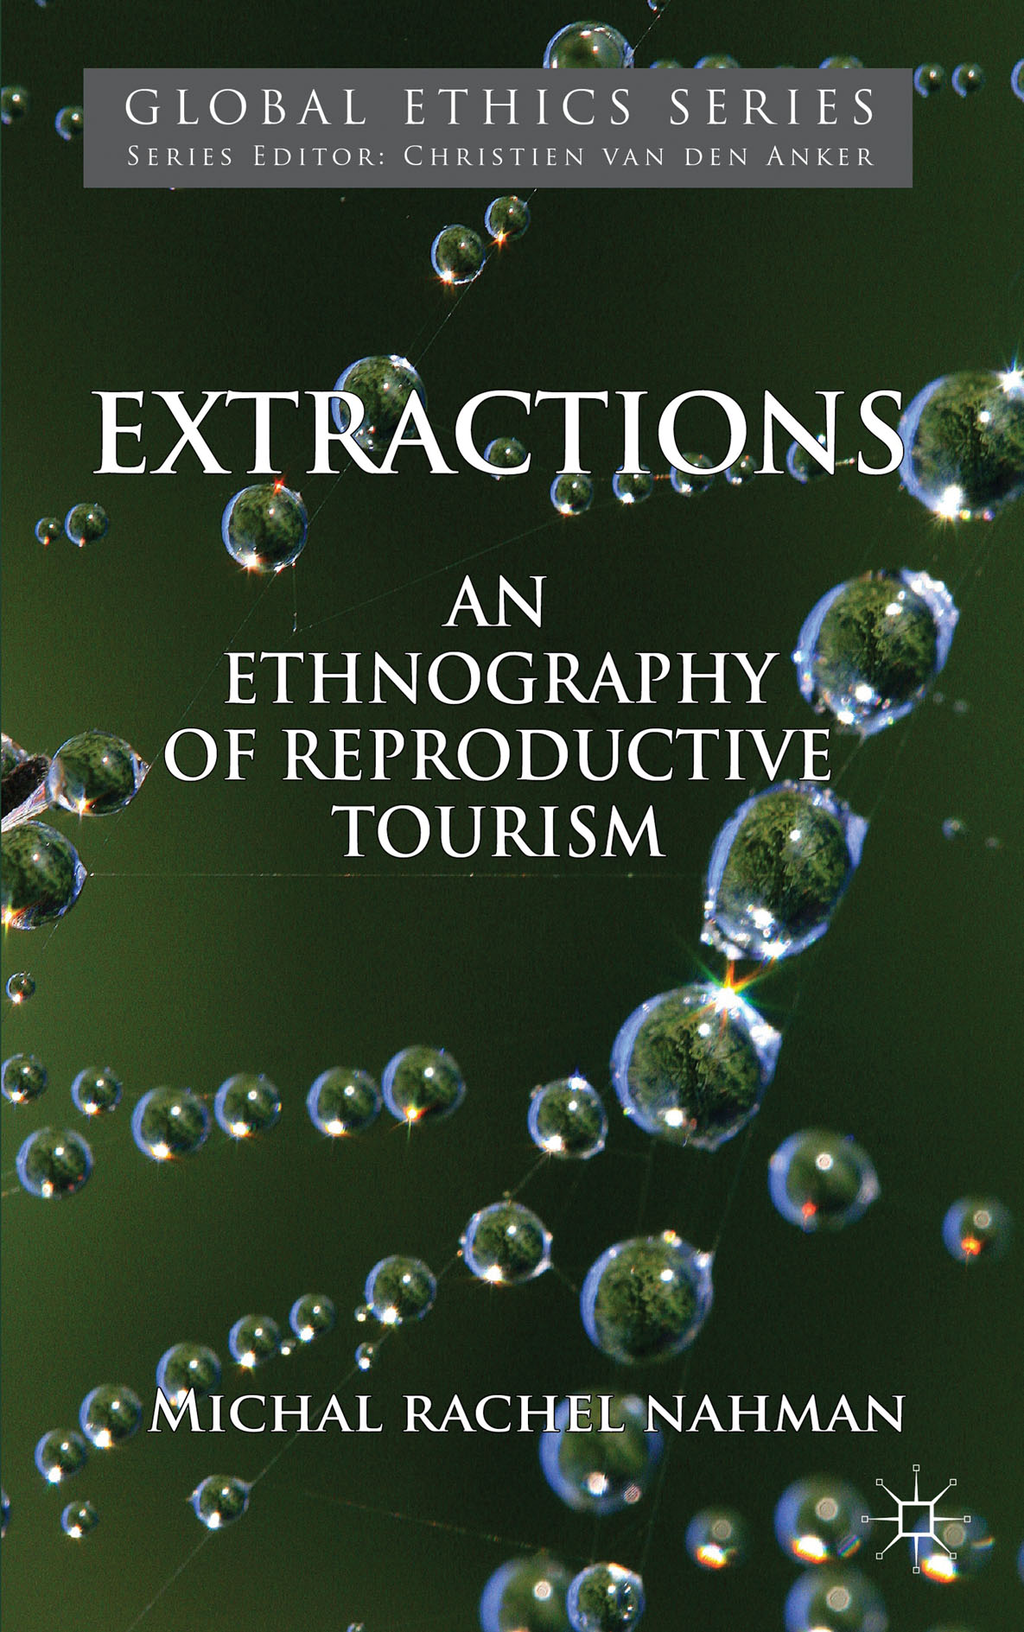 Extractions An Ethnography of Reproductive Tourism